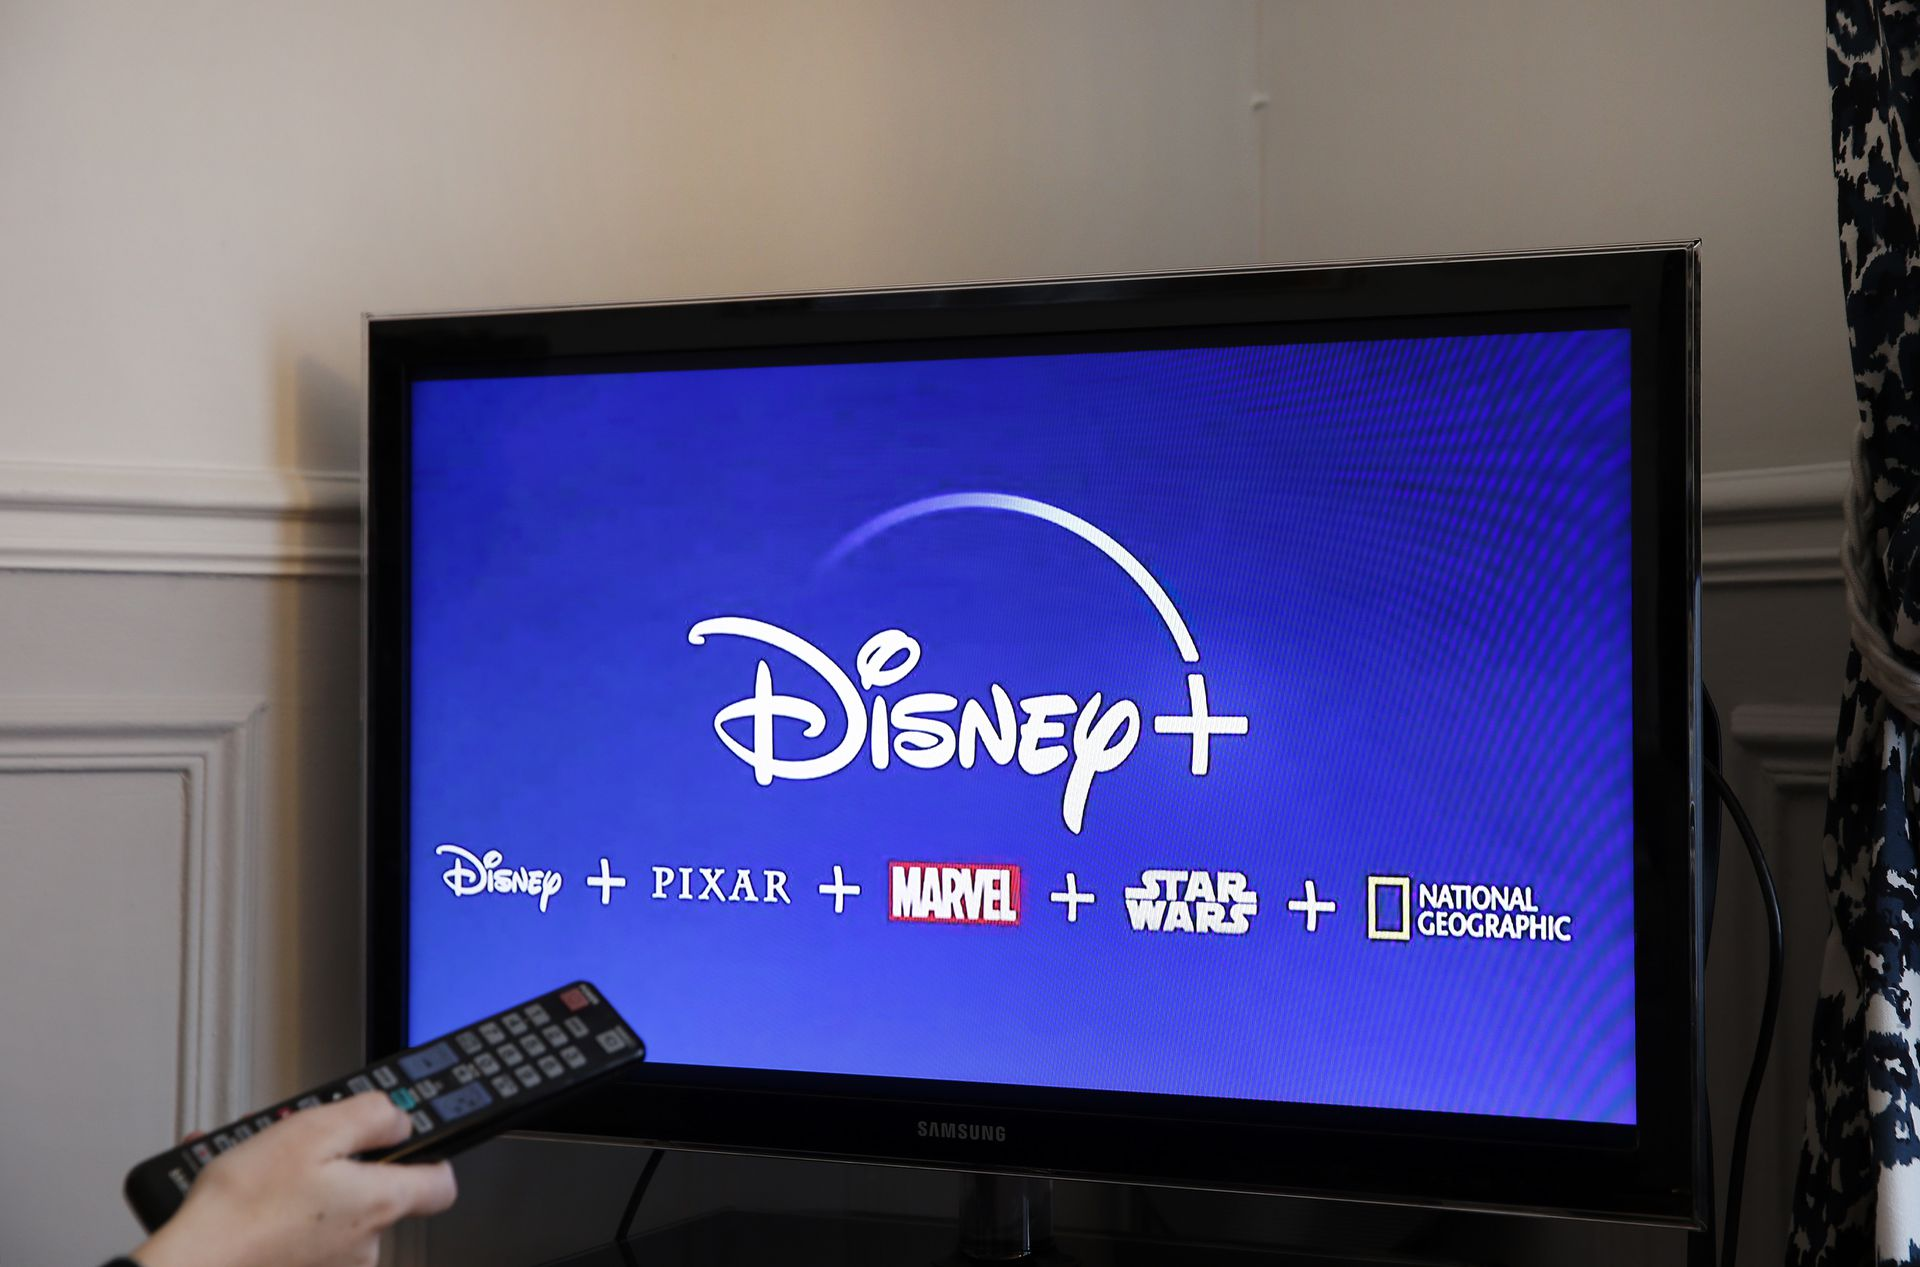 Disney had a very good day after millions sign up for new streaming service